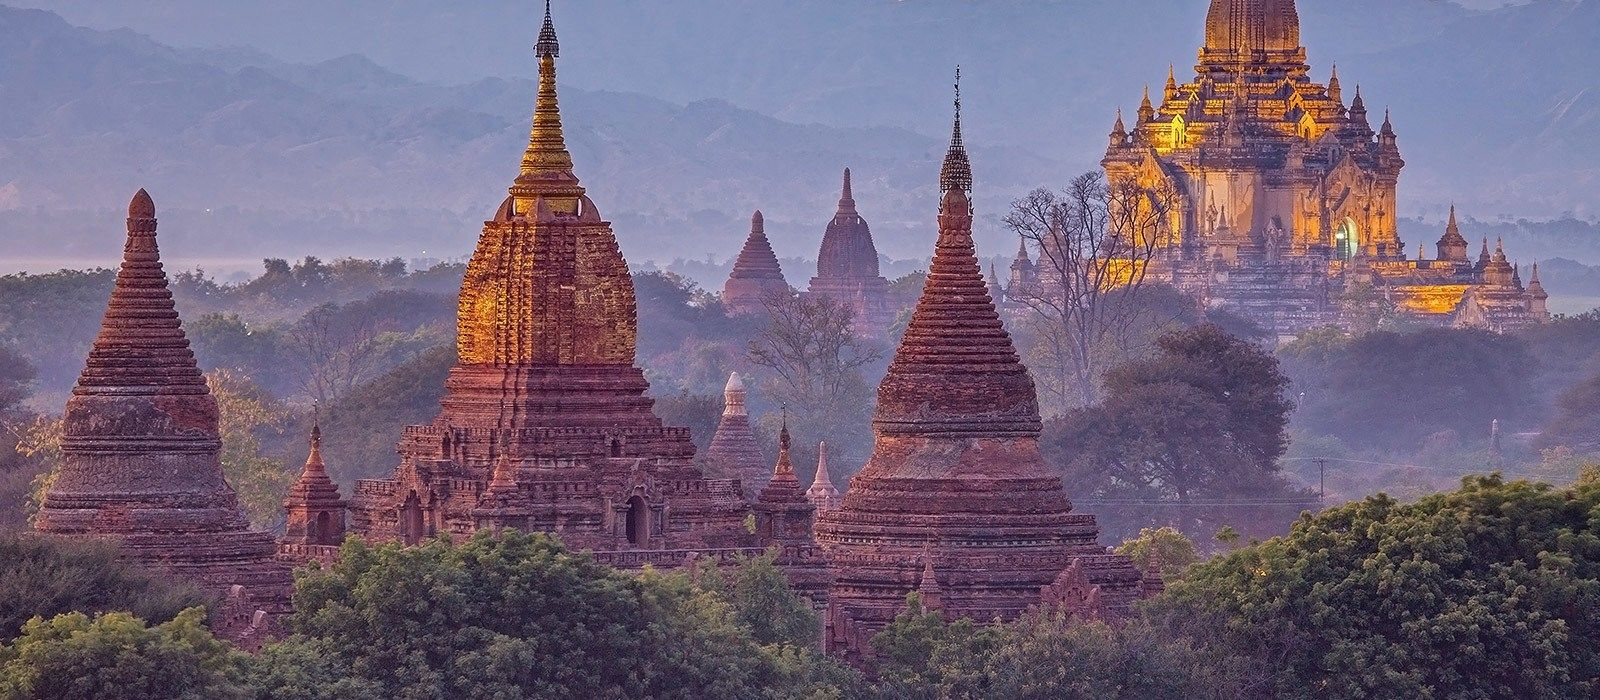 Myanmar: Temples, Rivers & Relaxation  Tours & Trips with ...